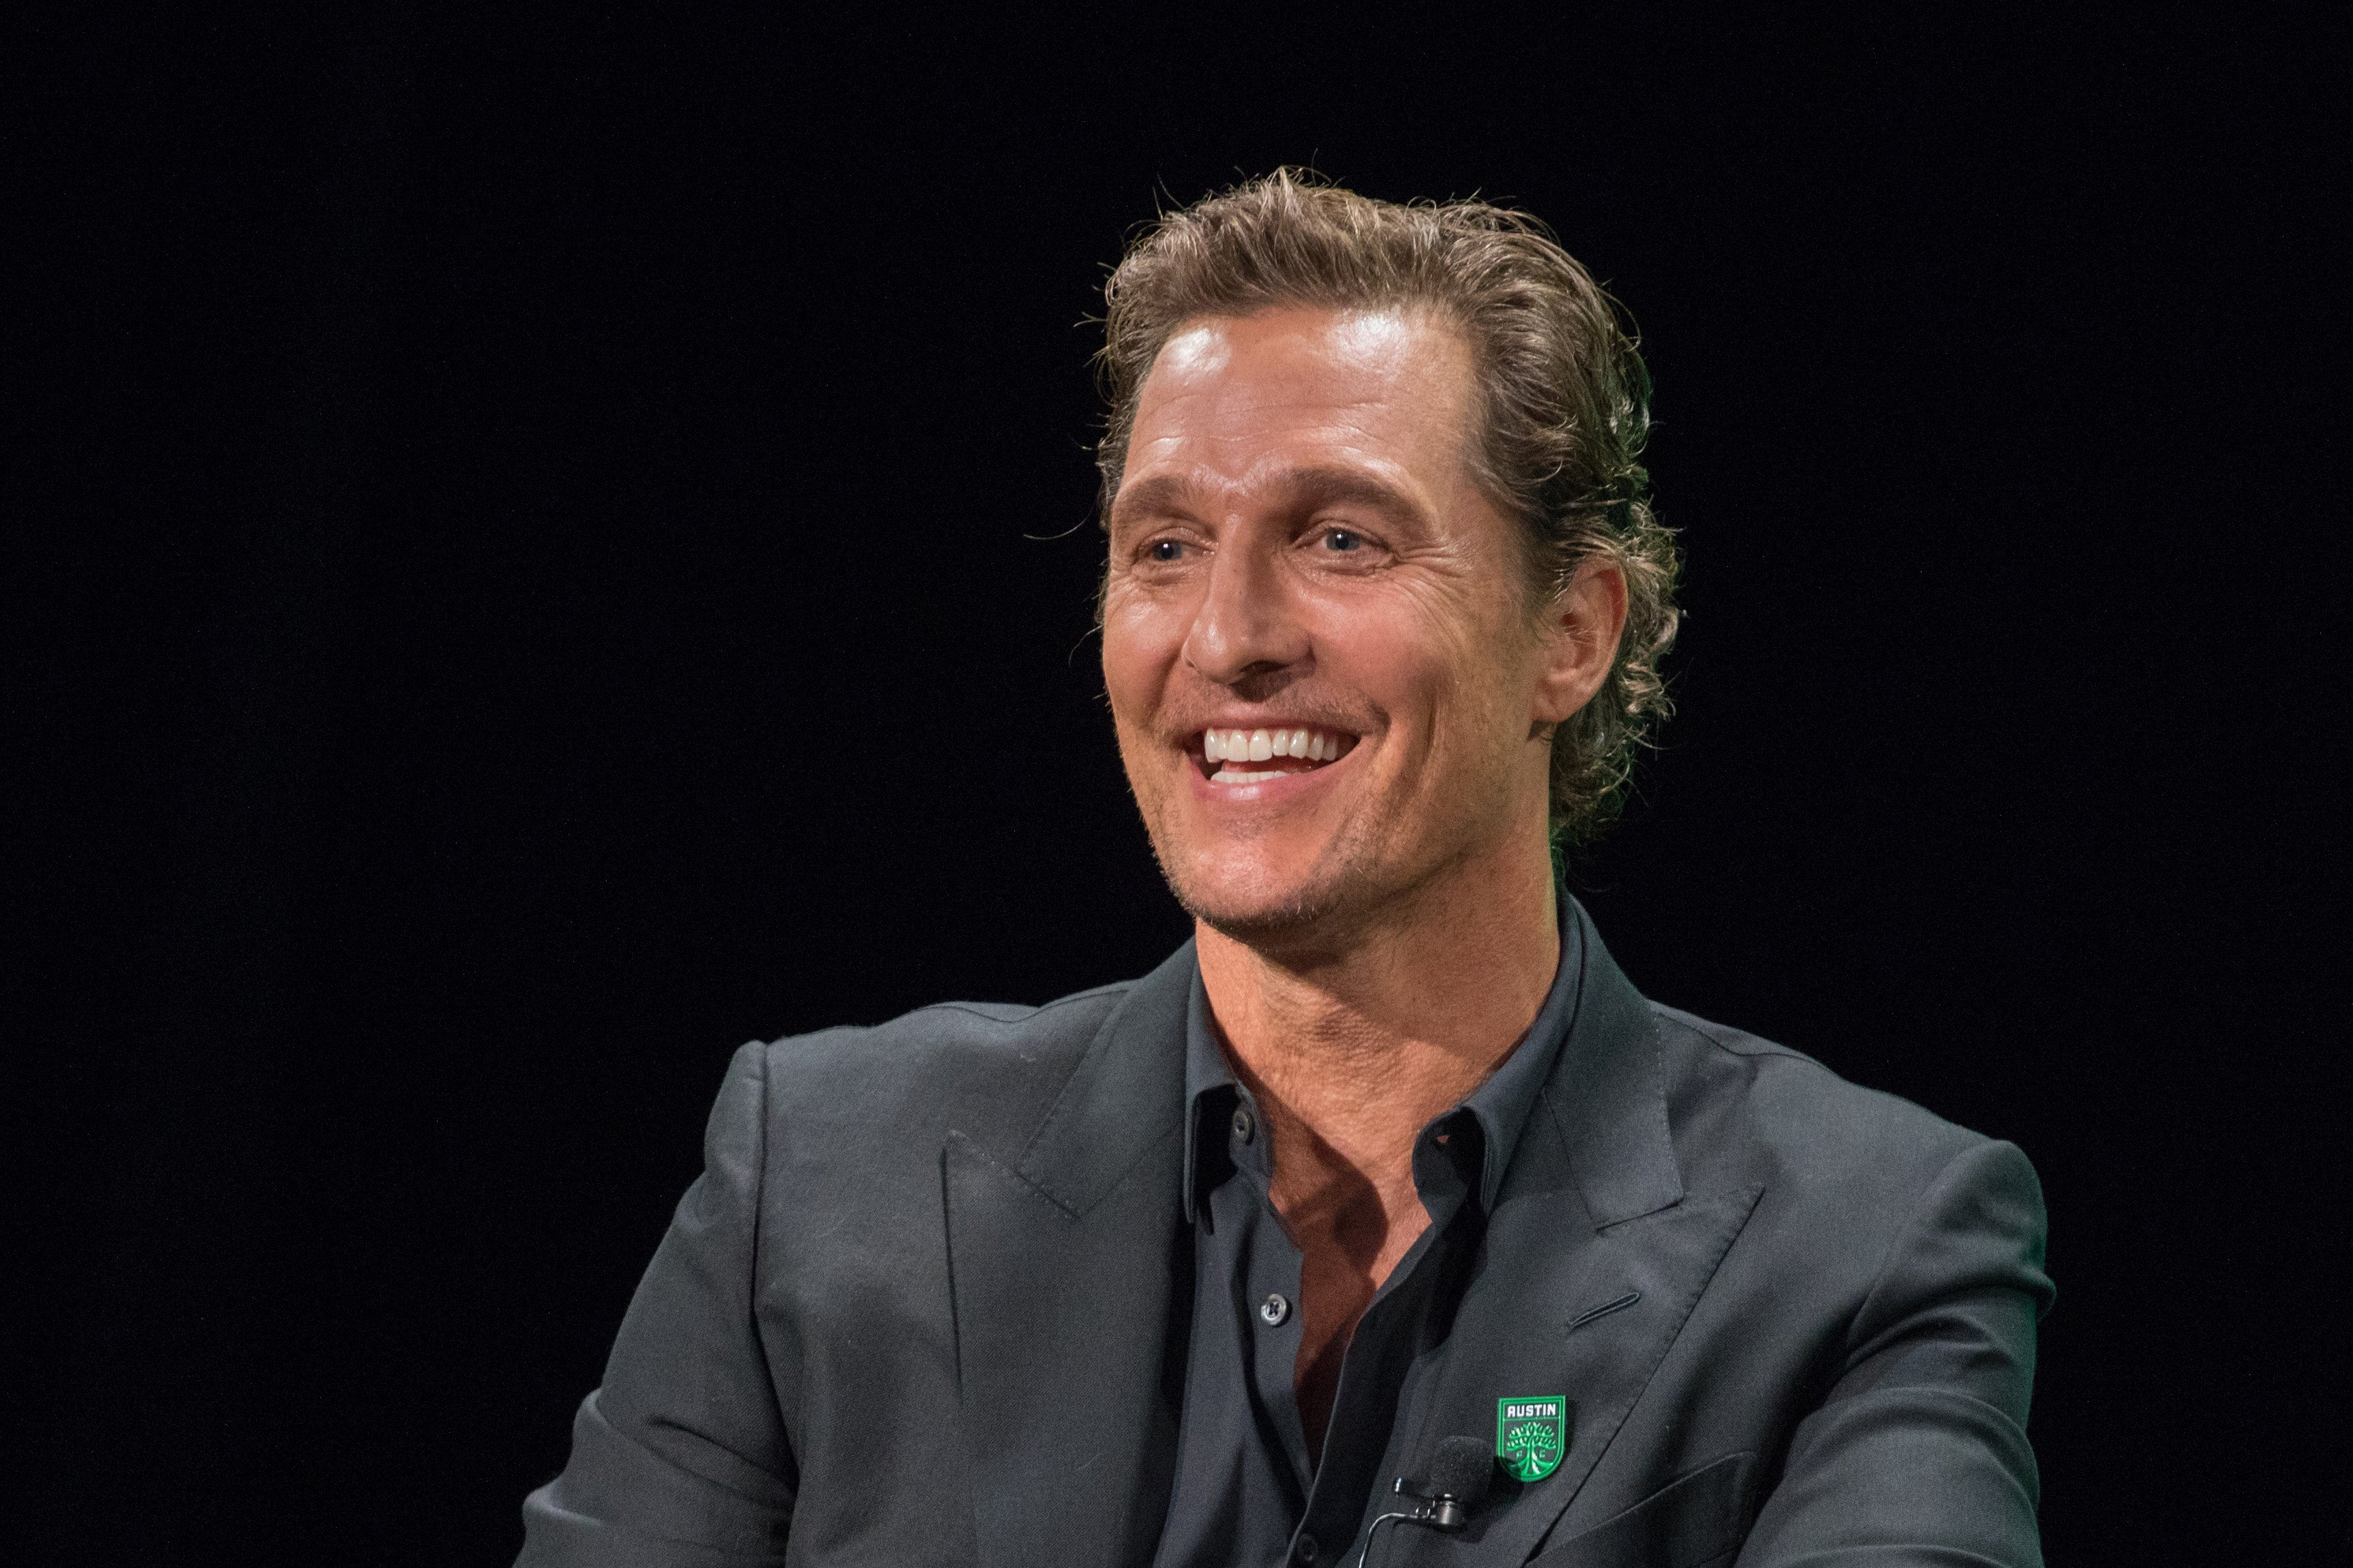 Matthew McConaughey, 3TEN ACL Live am 23. August 2019 in Austin, Texas | Quelle: Getty Images